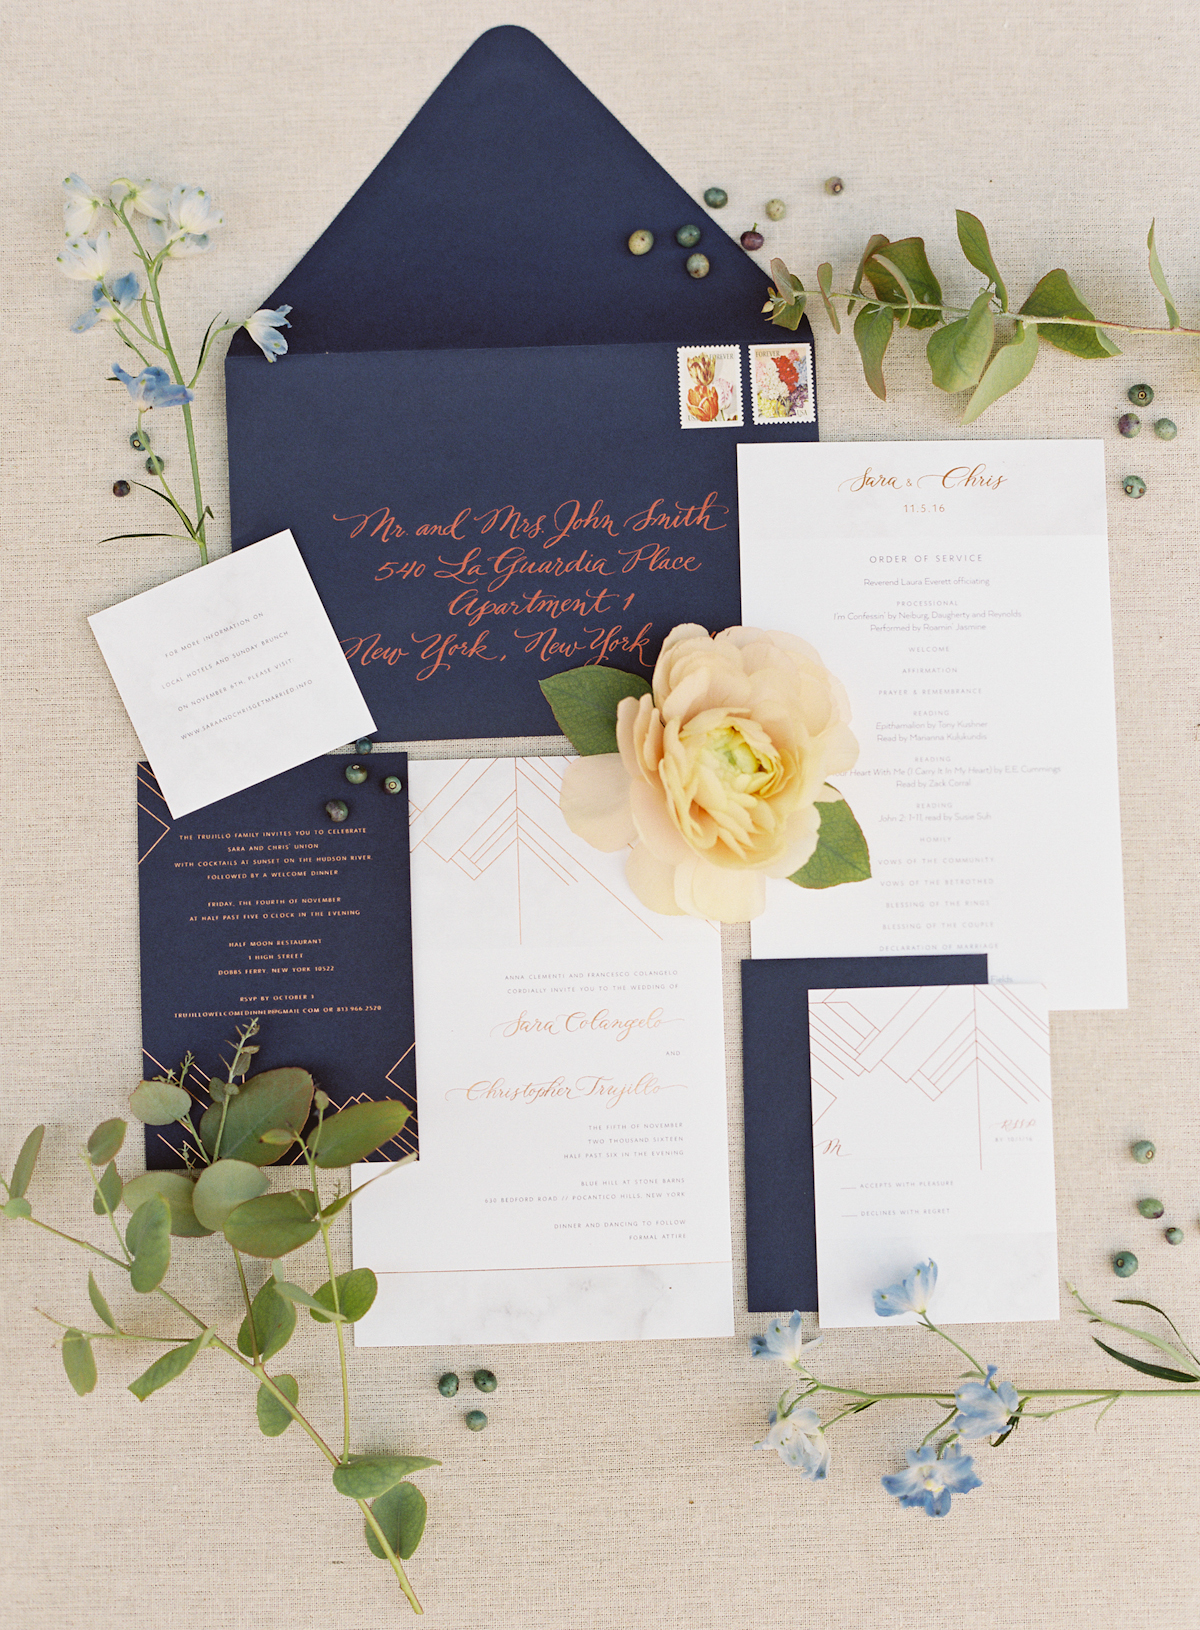 Blue Hill at Stone Barns wedding, event planner Ang Weddings and Events, photography Judy Pak, wedding invitations Katie Fischer Design